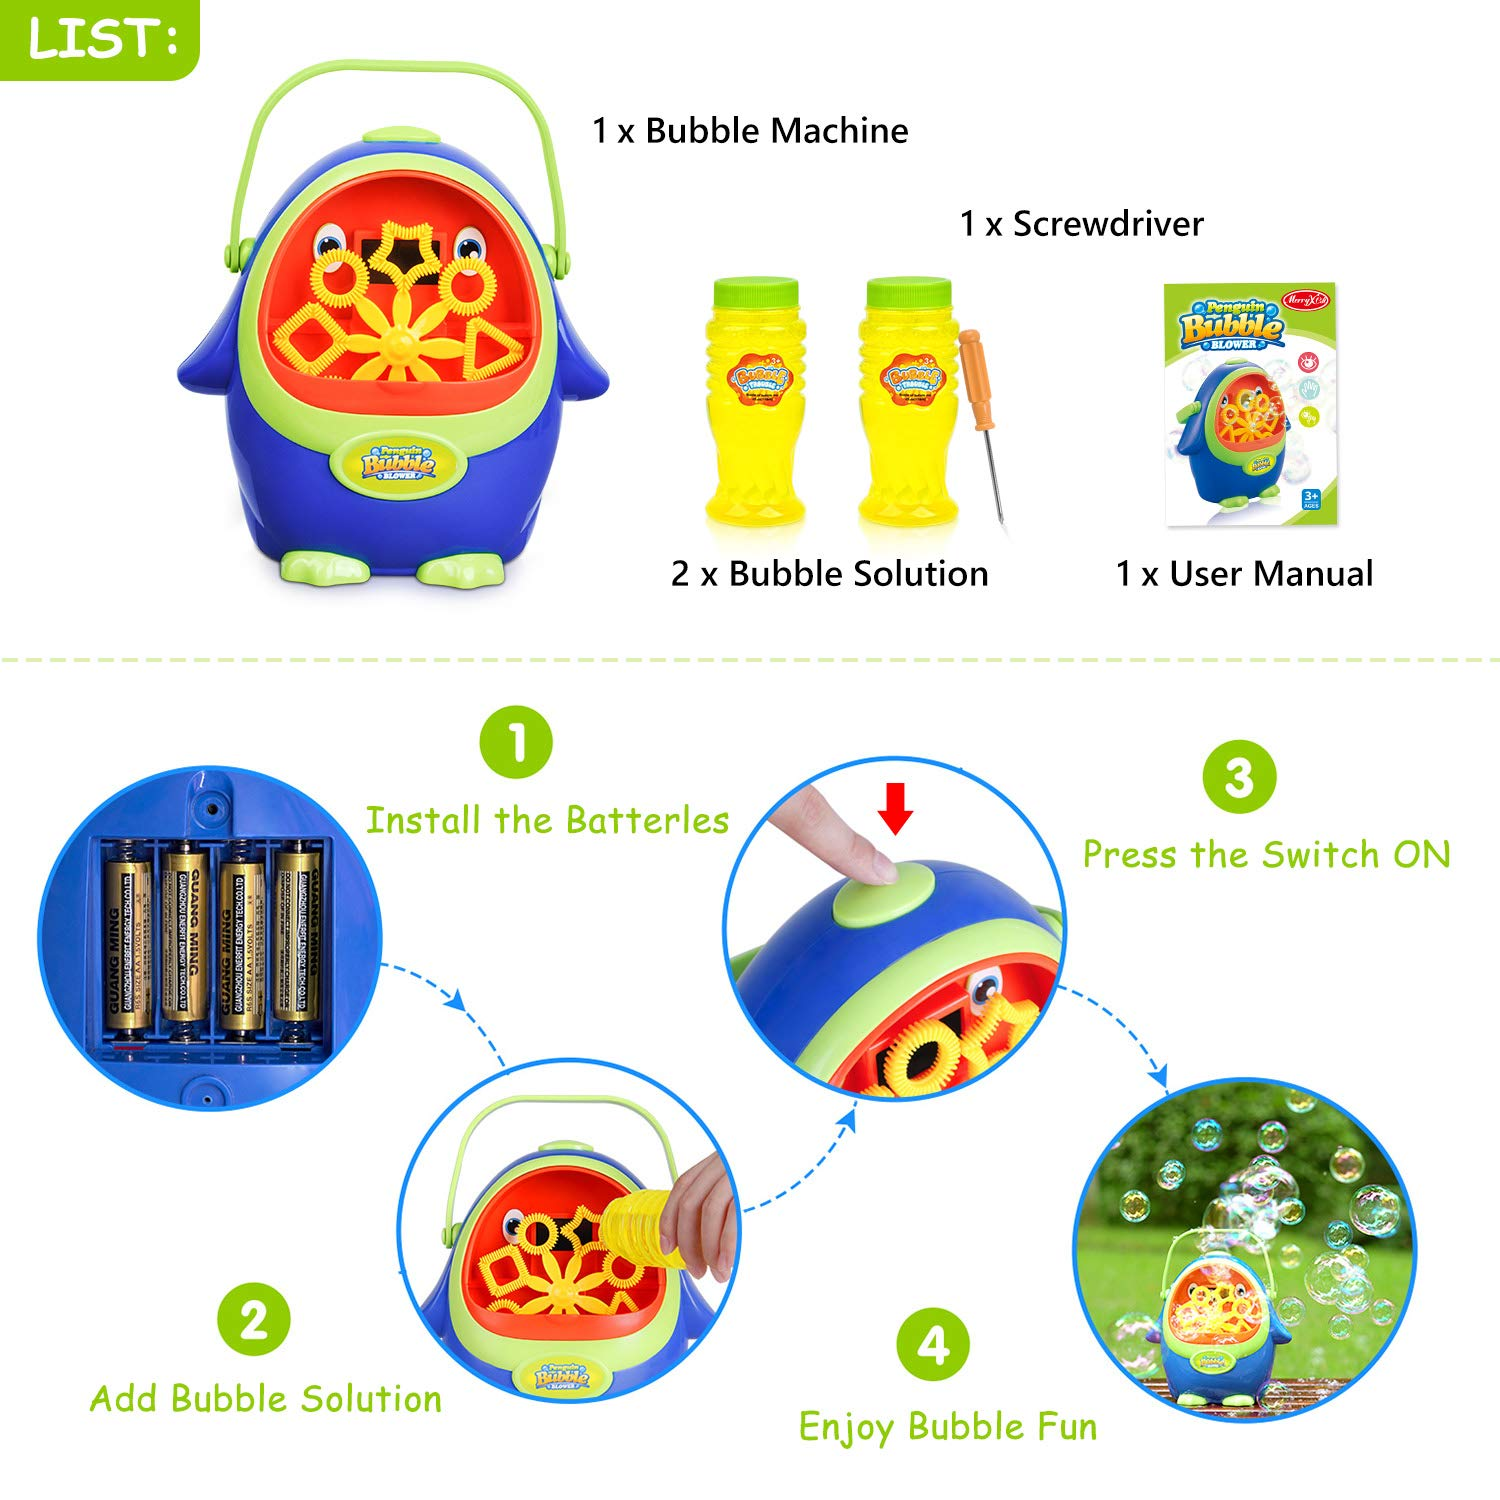 Bubble Machine - Automatic Bubble Blower with Bubble Solution for Kids Toddlers, Portable Bubble Maker with Bubbles Solution for Party, Wedding, Outdoor and Indoor Use, Battery Operated, Penguin Shape by LOYO (Image #3)